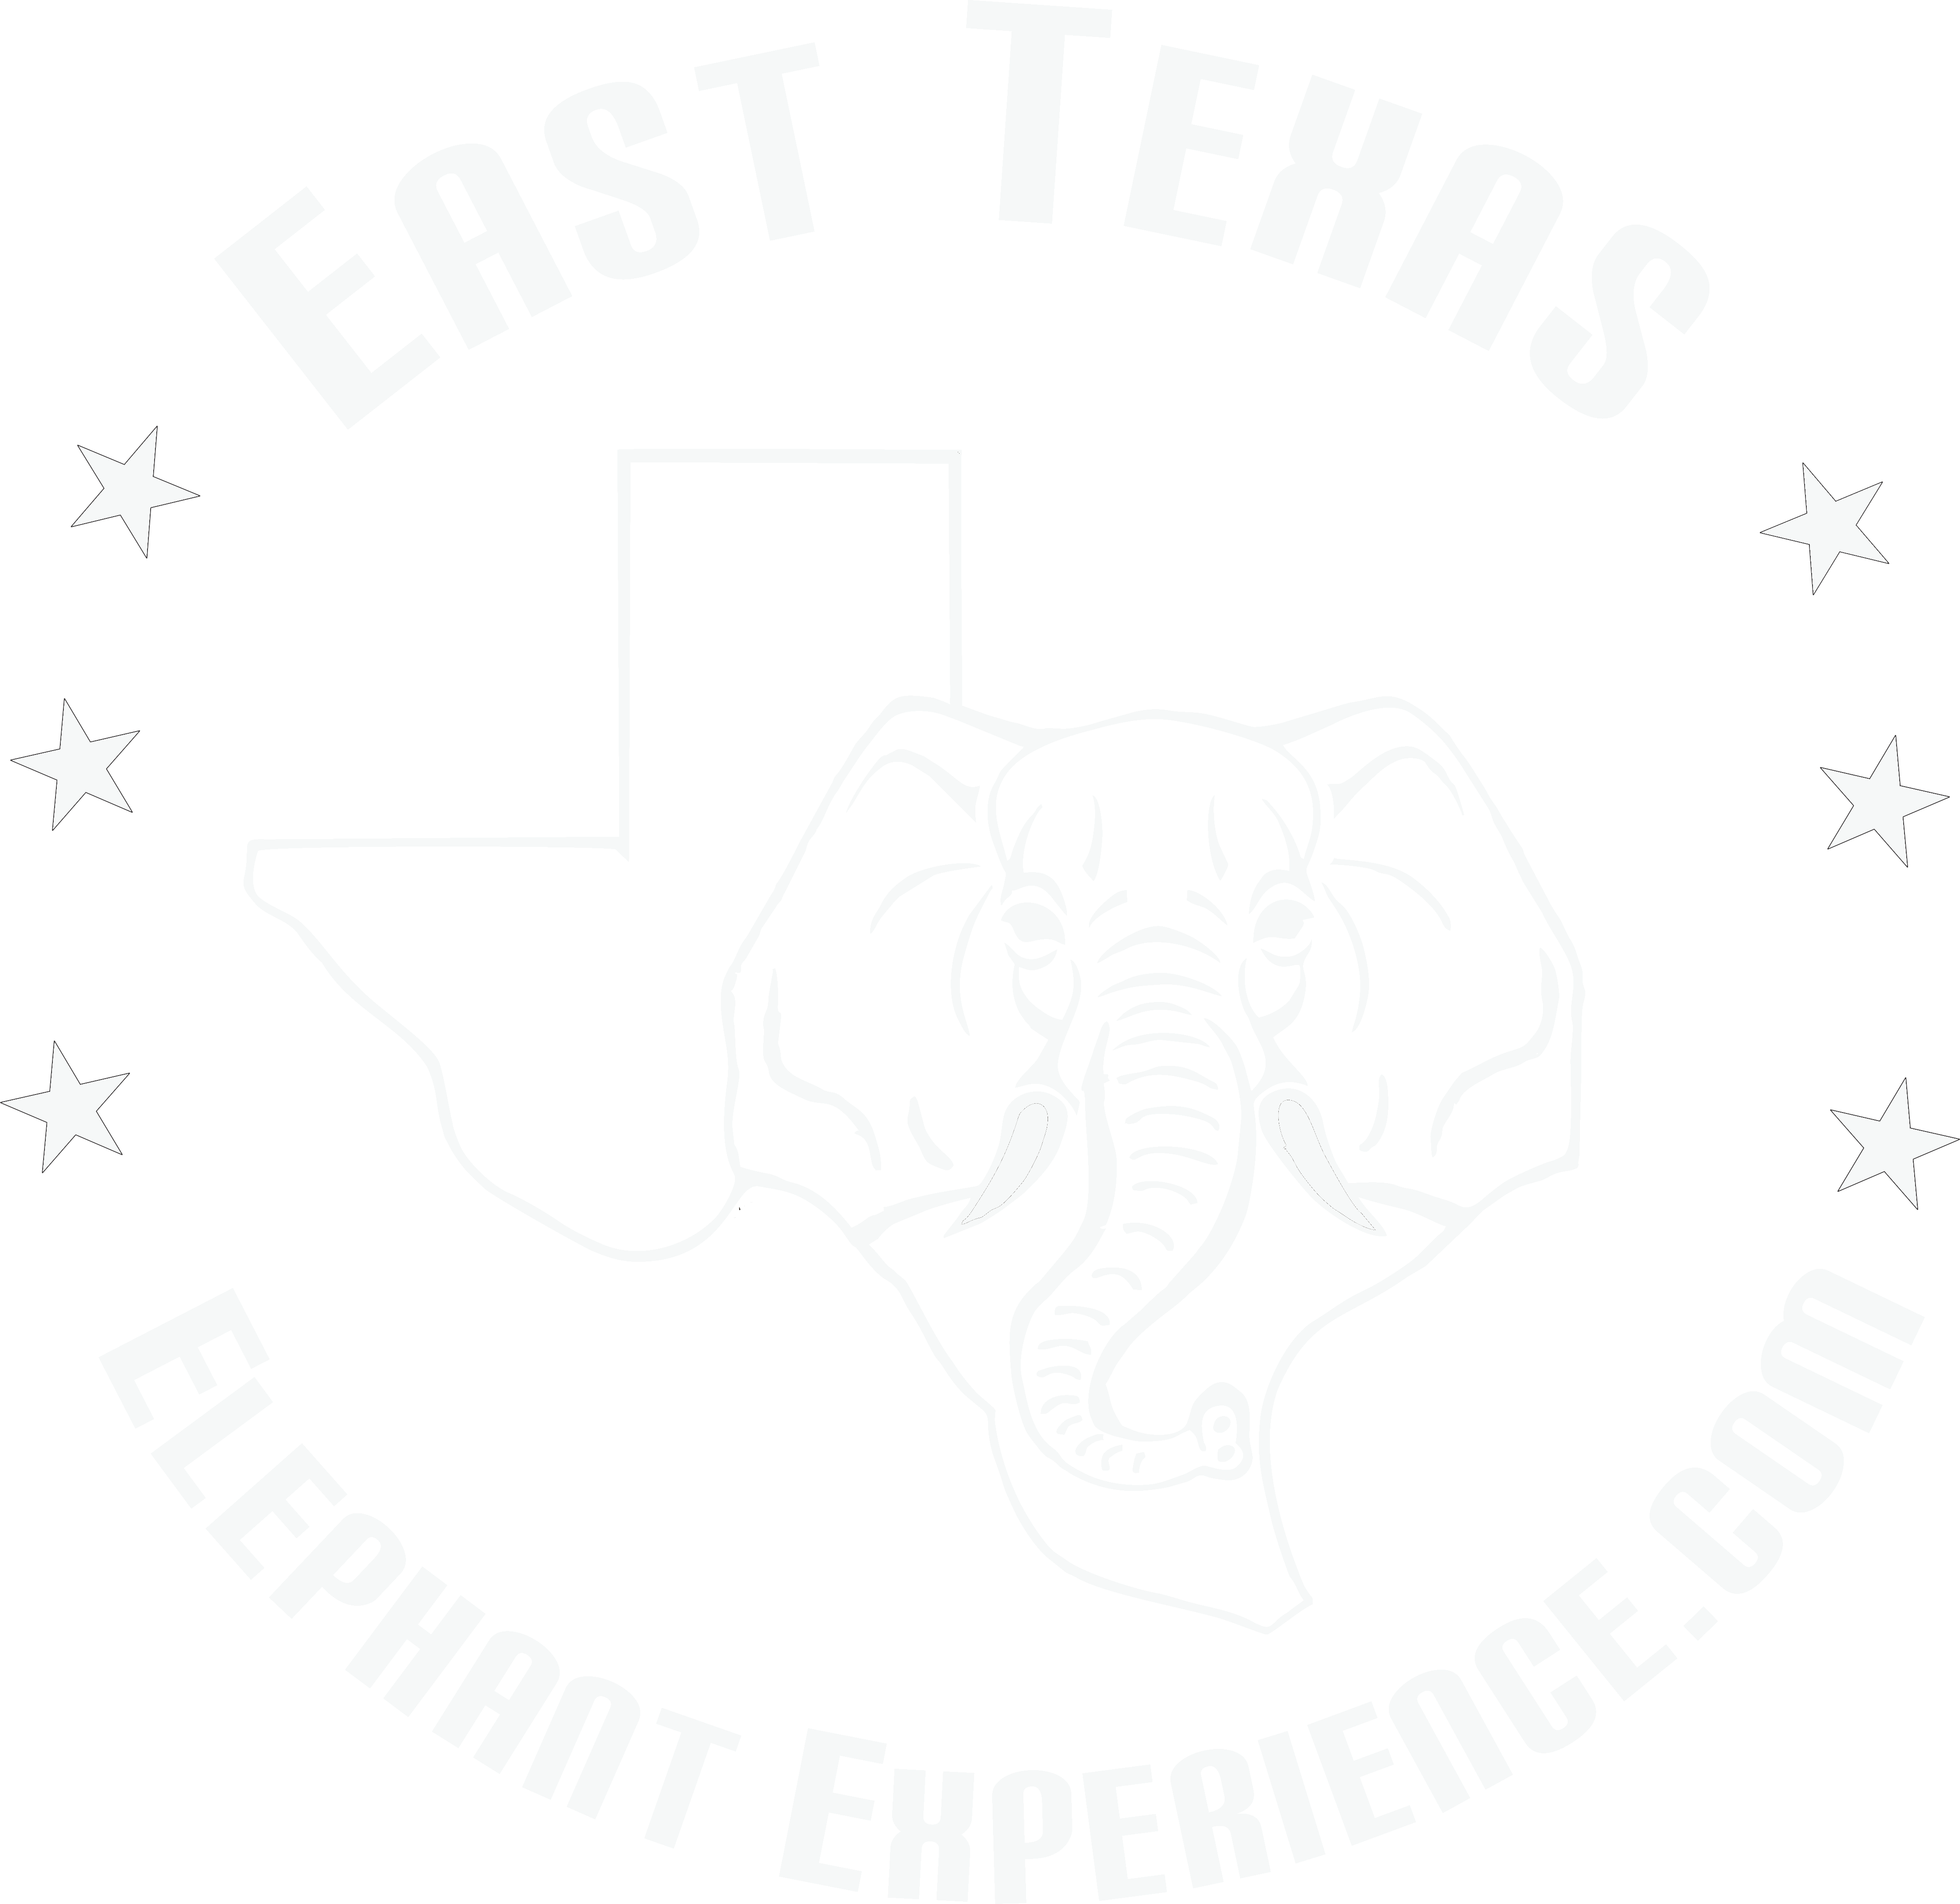 East Texas Elephant Experience